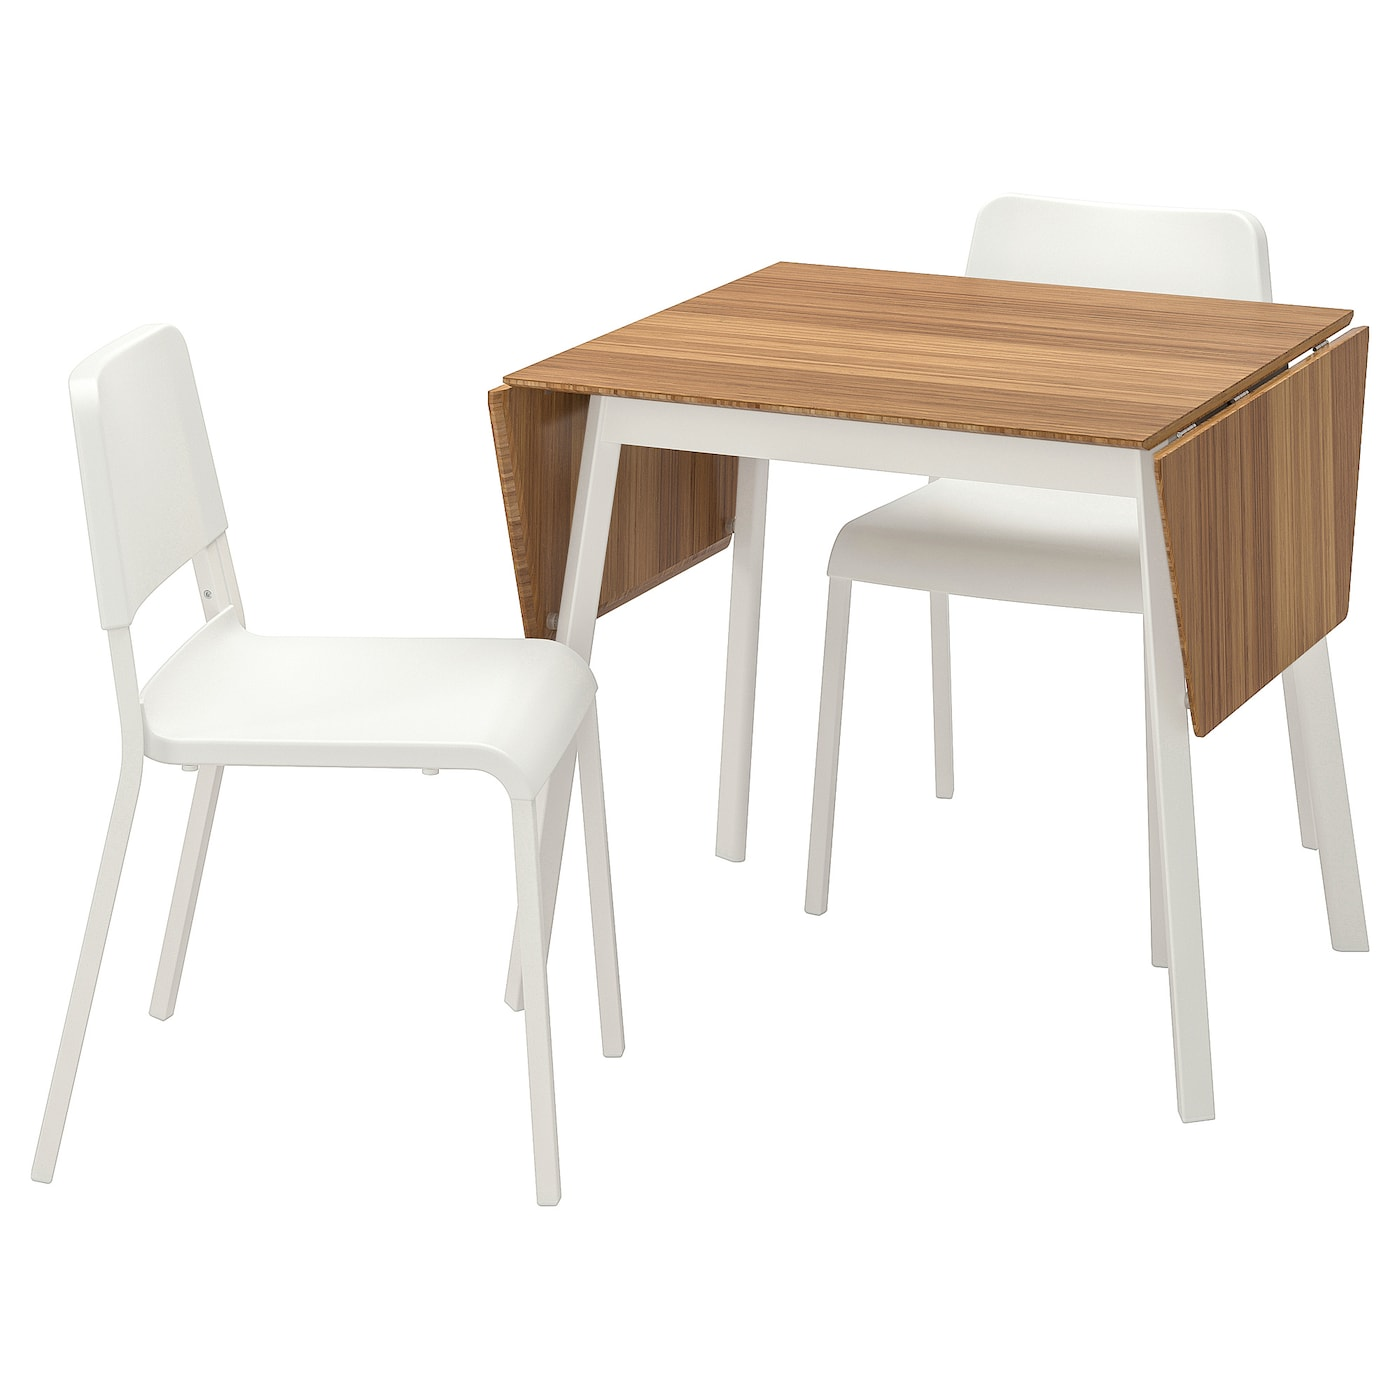 Ikea Ps 2017 Teodores Table And 2